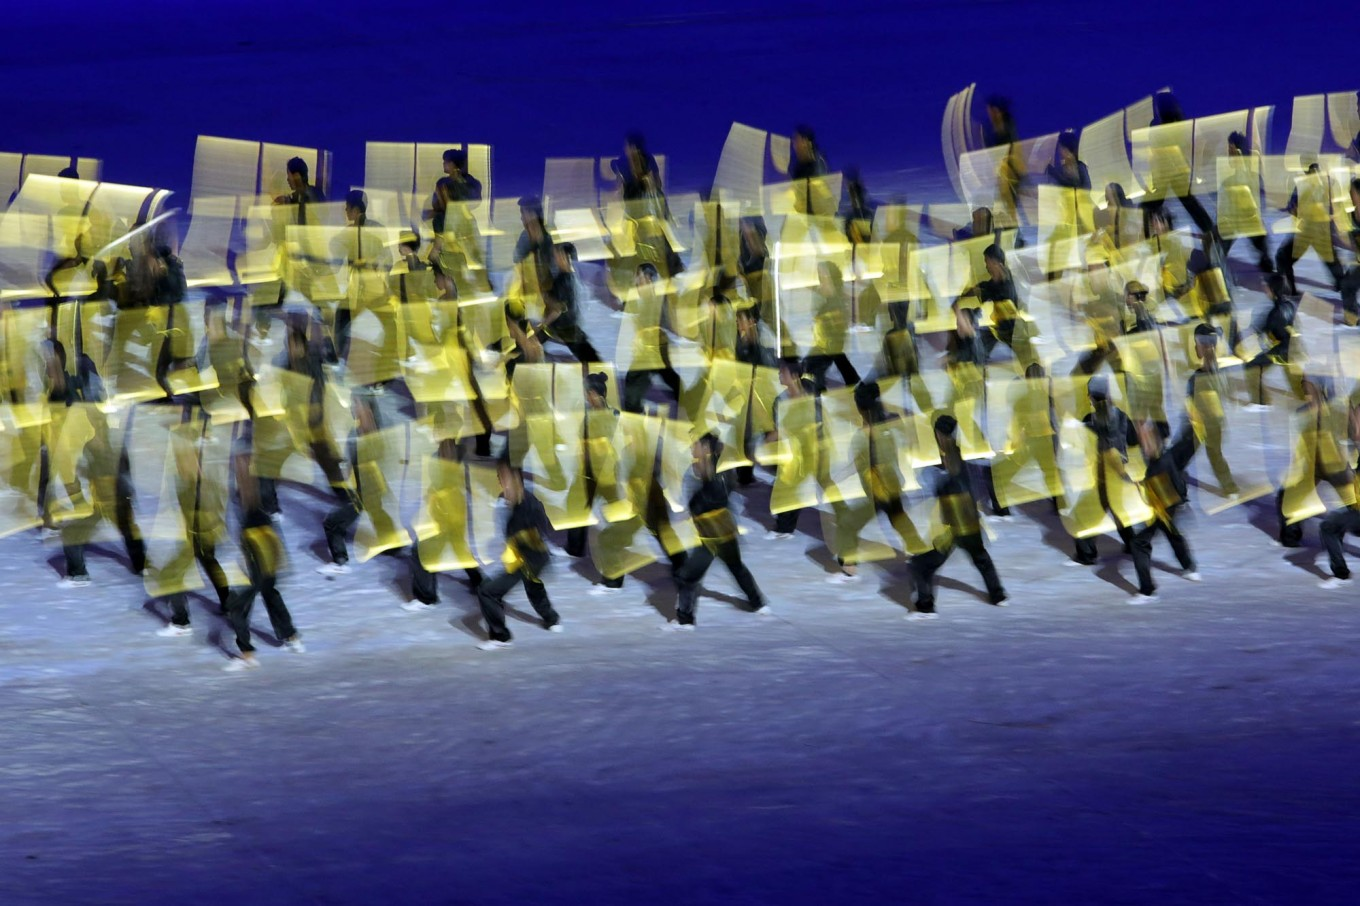 Dancers carry yellow boards during their performance at the opening ceremony. JP/Seto Wardhana